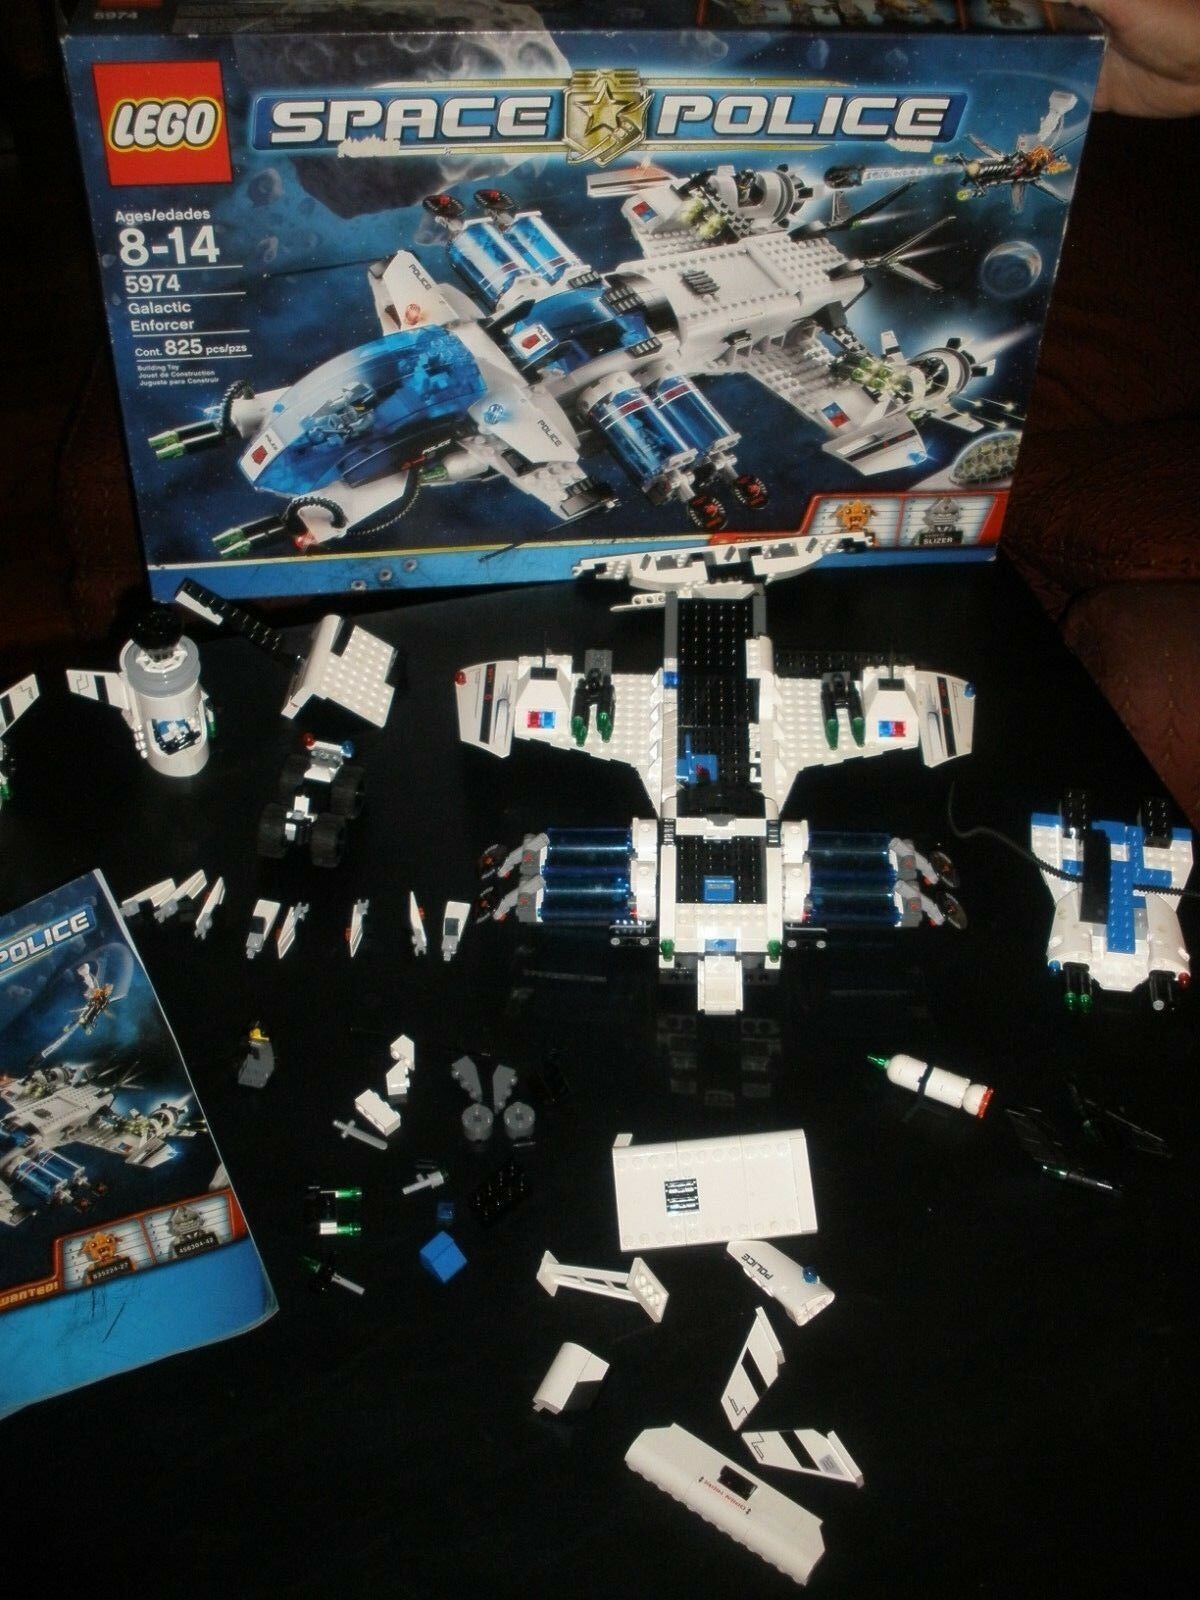 Lego Space Police Galactic Enforcer 5974 with Box & Instructions not complete